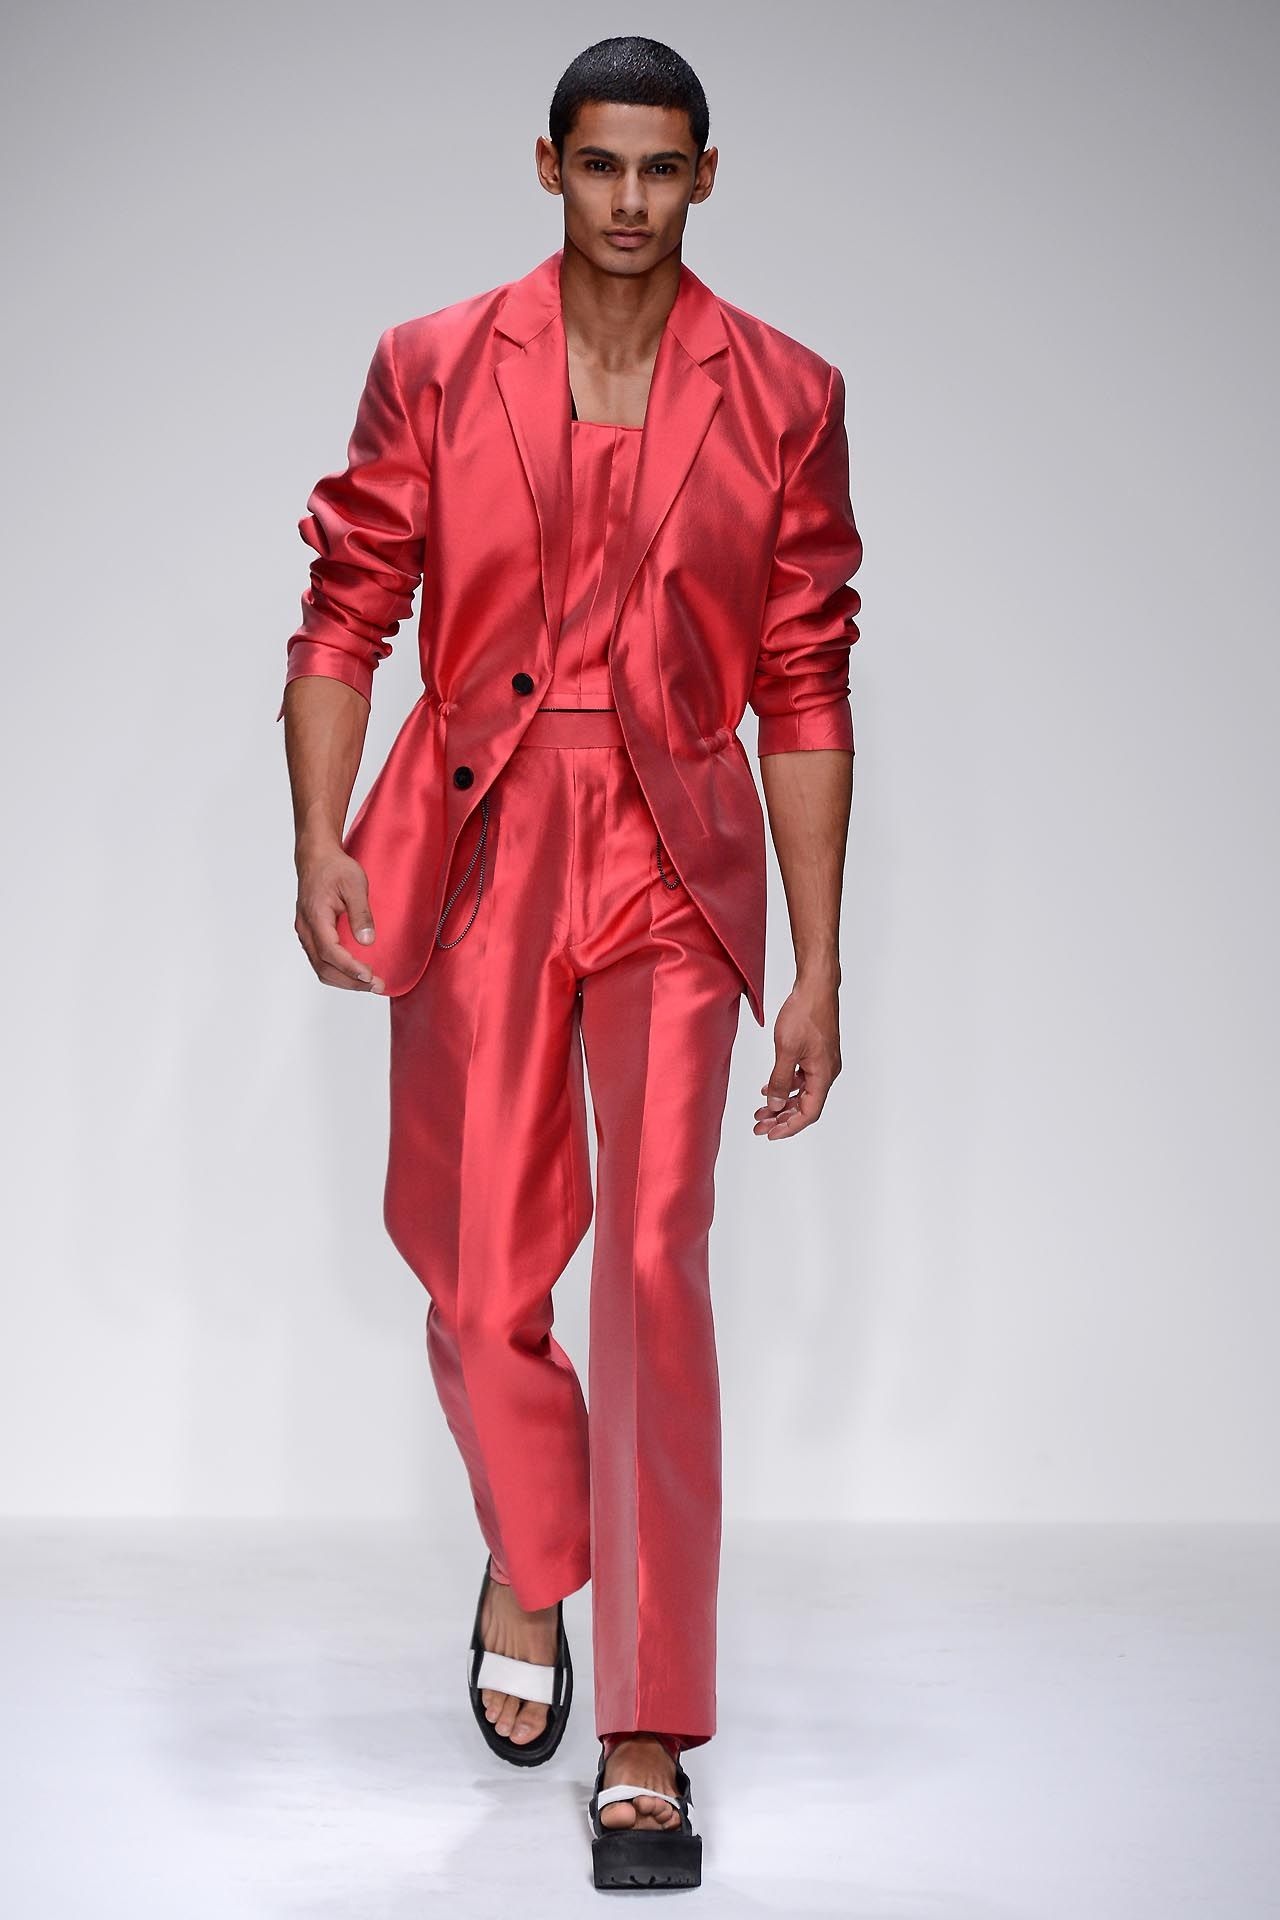 Xander Zhou SS13r - Love the color